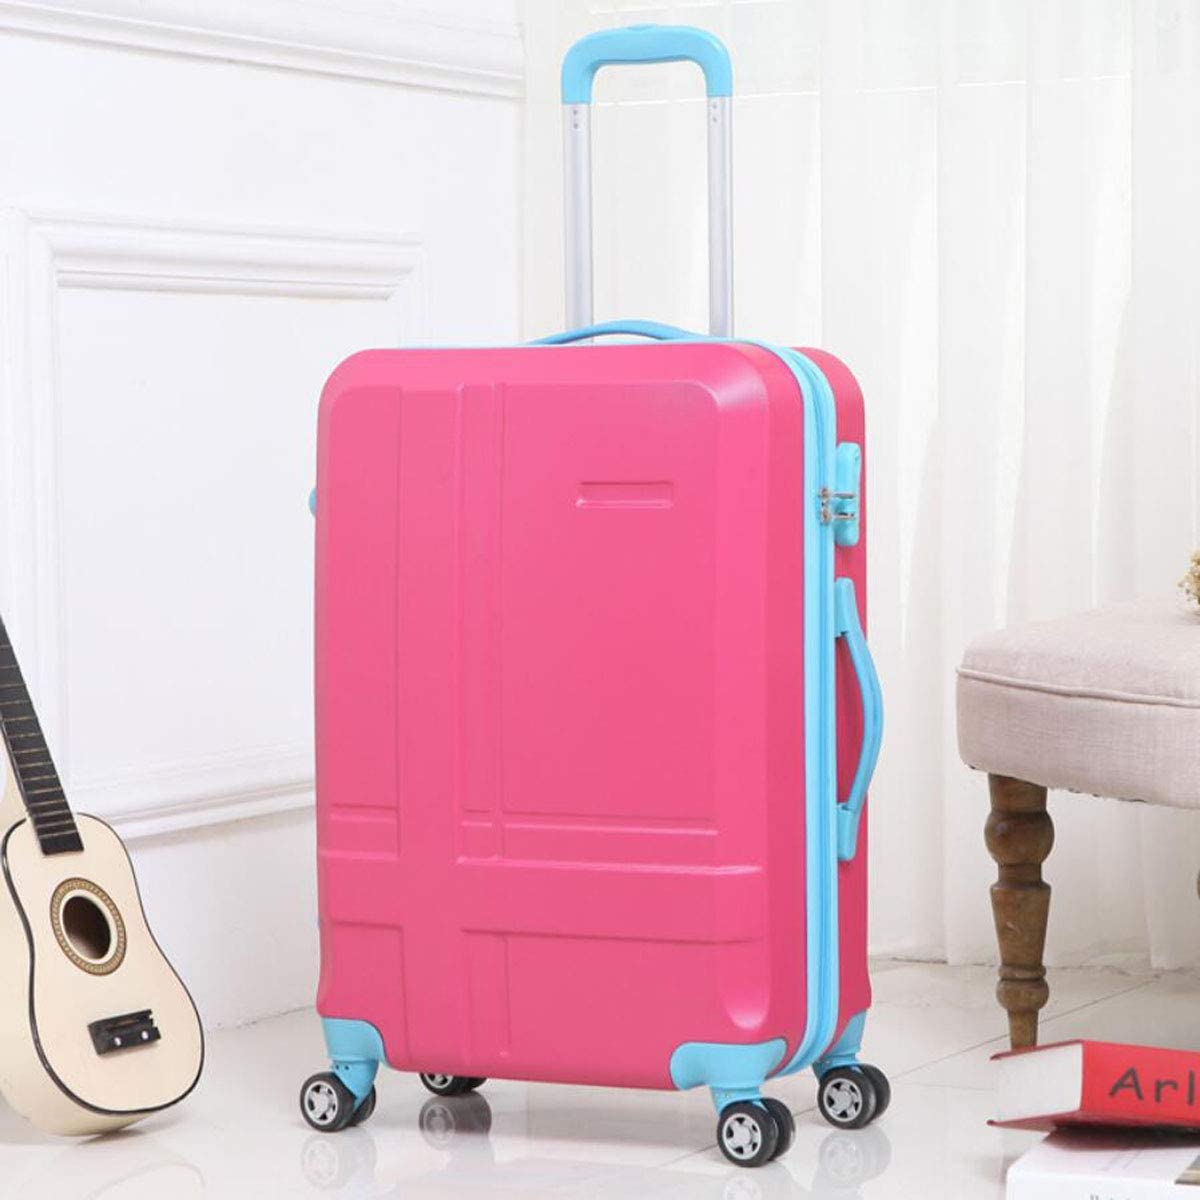 34 22 56 Color : Light Blue, Size : 14923 inch cm Aishanghuayi Suitcase for Expandable 8-Wheel fine-Tuning Consignment Suitcase,